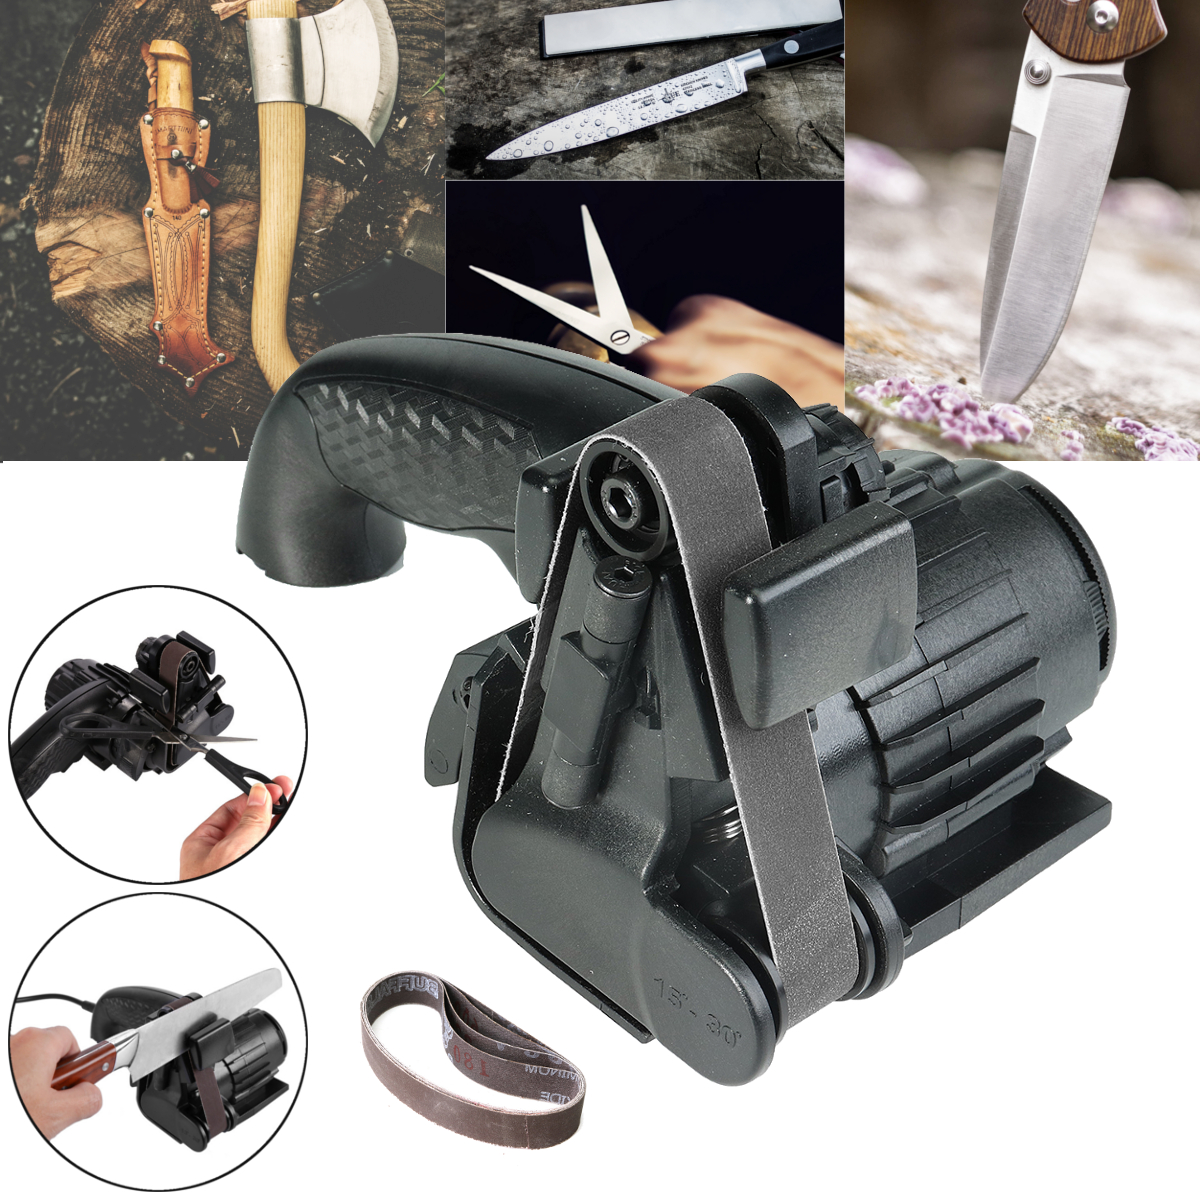 Electric Knife Sharpener Speedy Automatic Self-abrasive Onion Edition Knife Sharpener Knives Sharpening Kitchen Tools Power Tool electric knife tool sharpener ken onion edition flexible abrasive belts variable speed motor multi positioning sharpening module